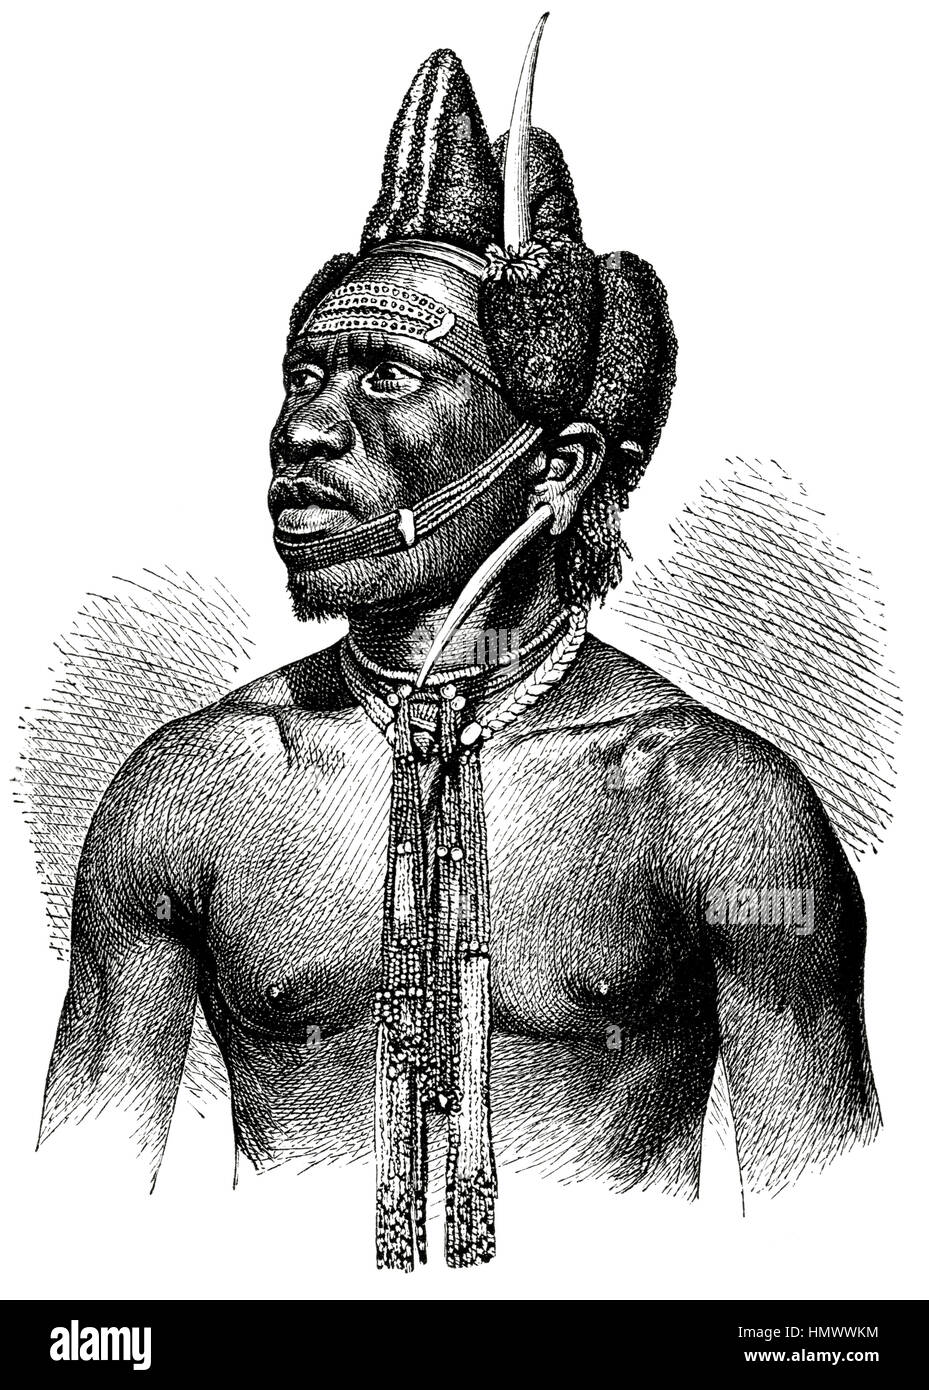 Pondo Krieger, Afrika, Illustration, 1885 Stockbild